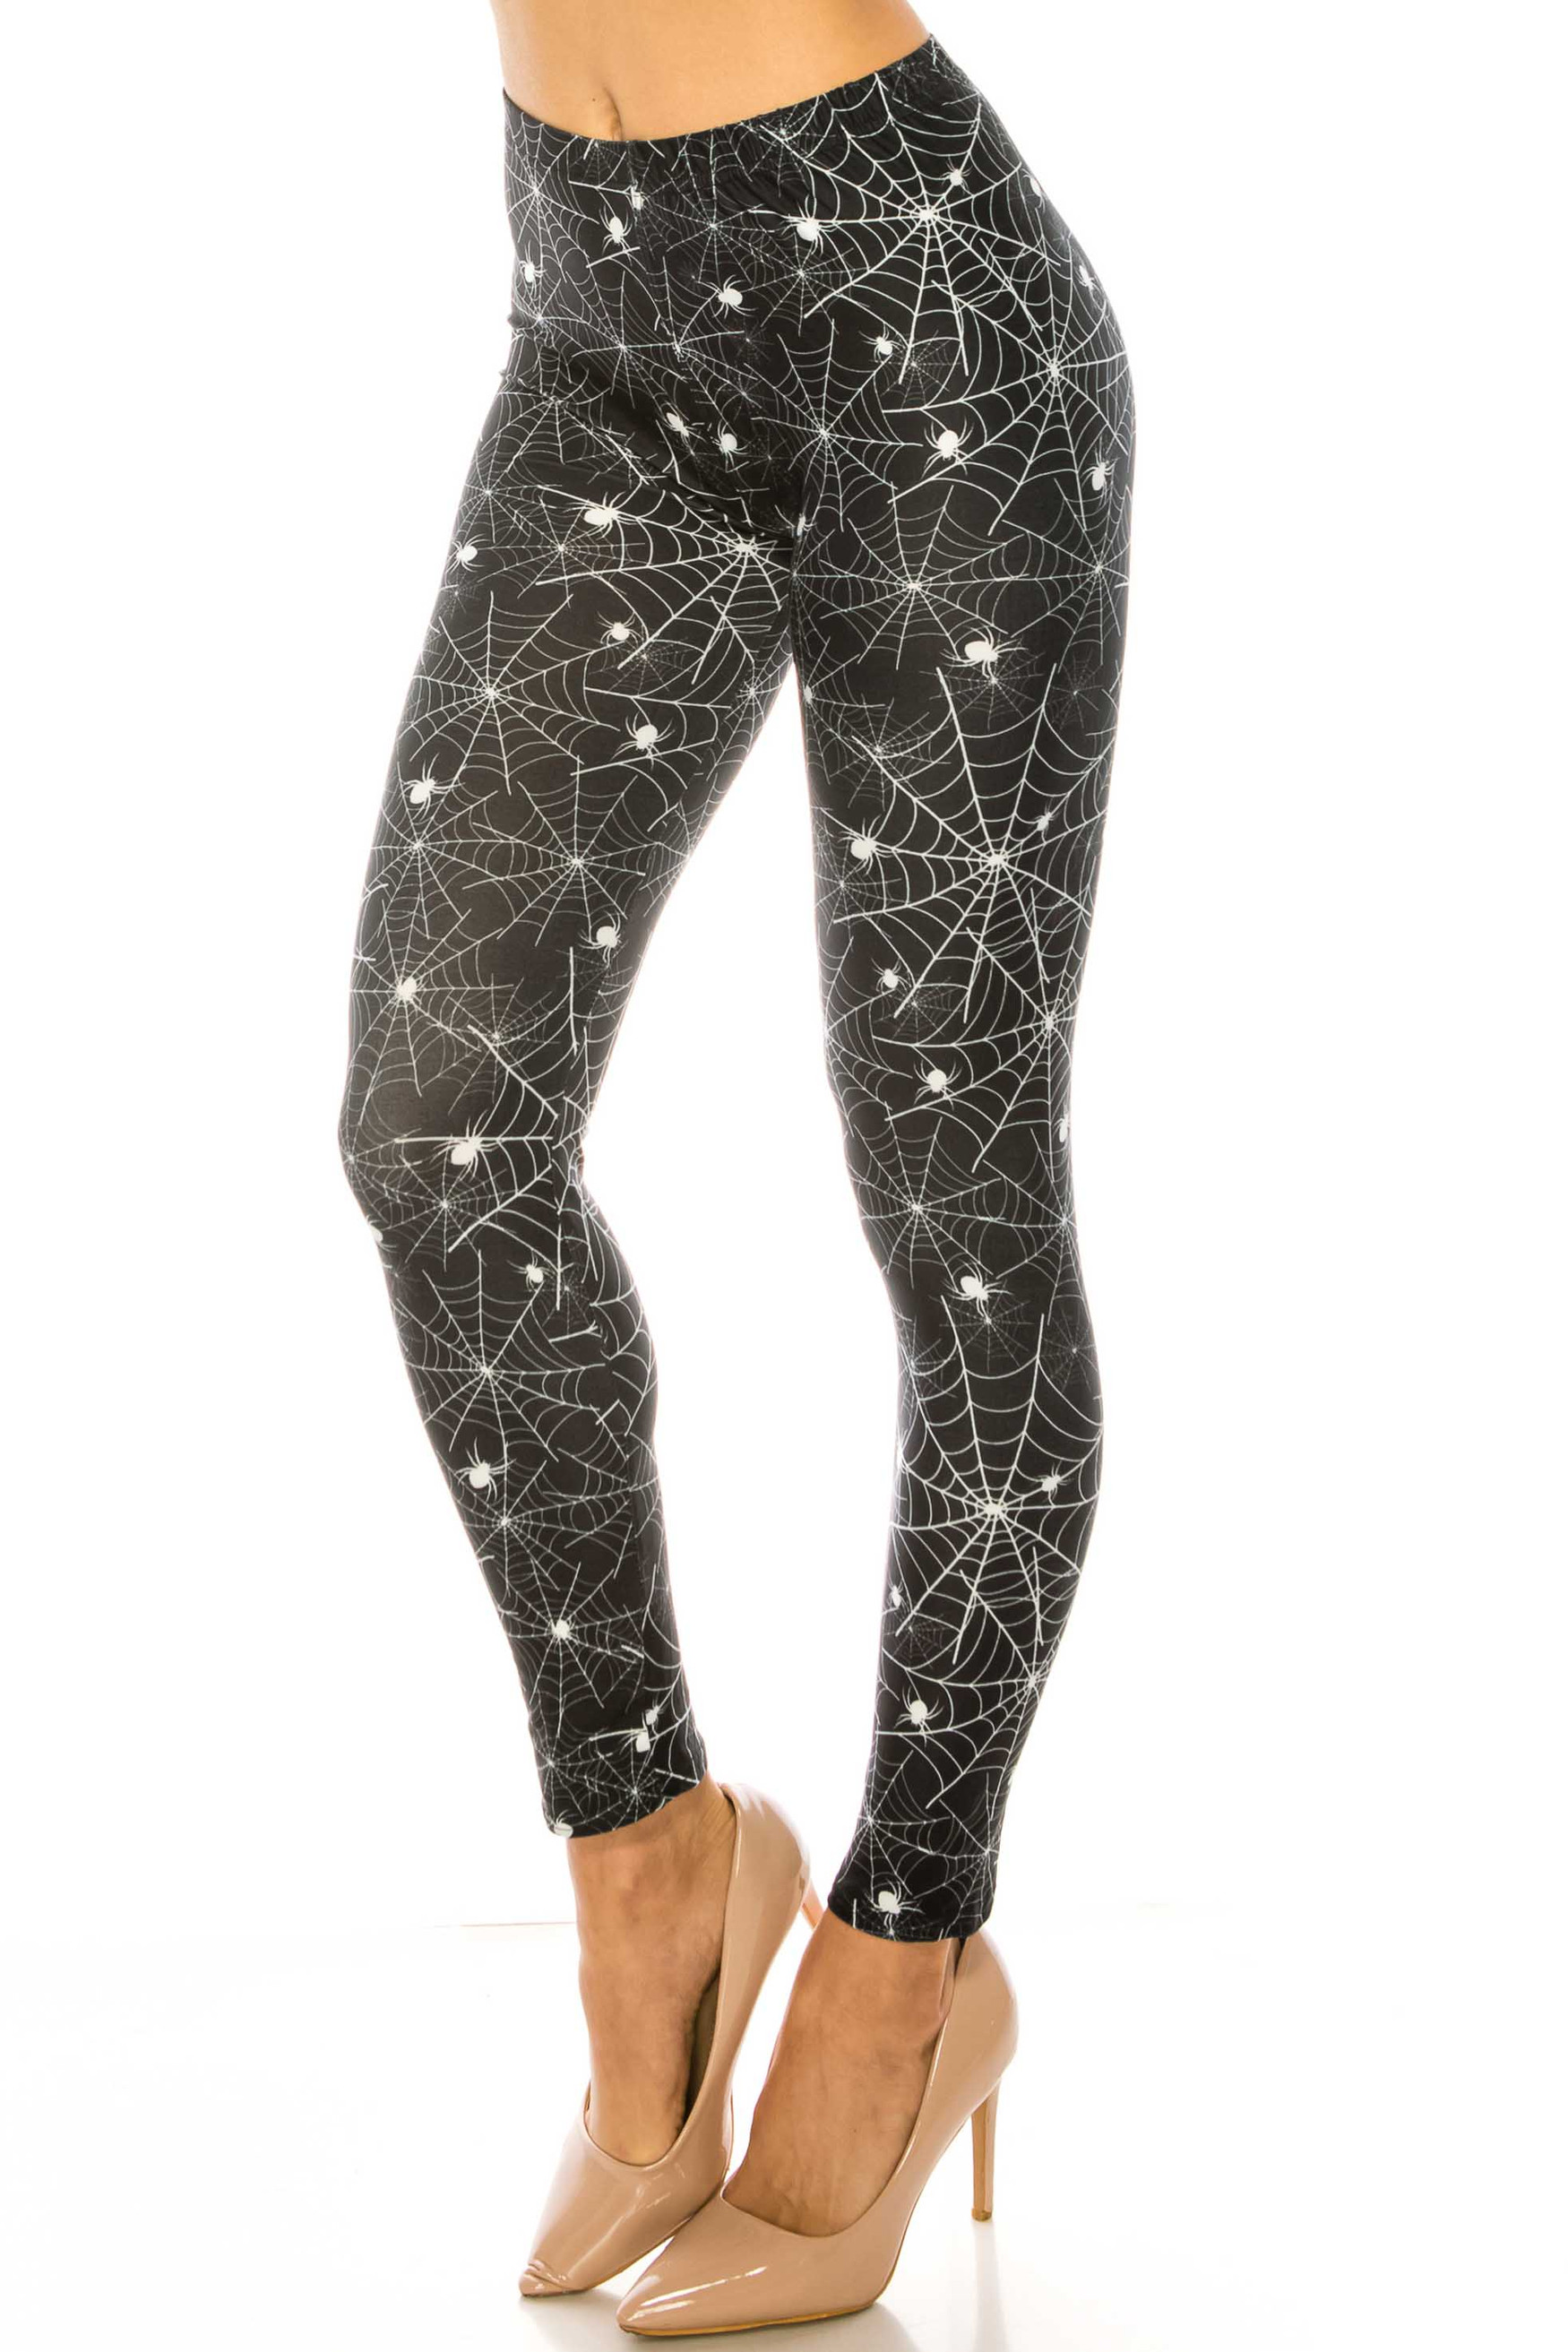 Wholesale Creamy Soft Spiders and Spiderwebs Kids Leggings - USA Fashion™